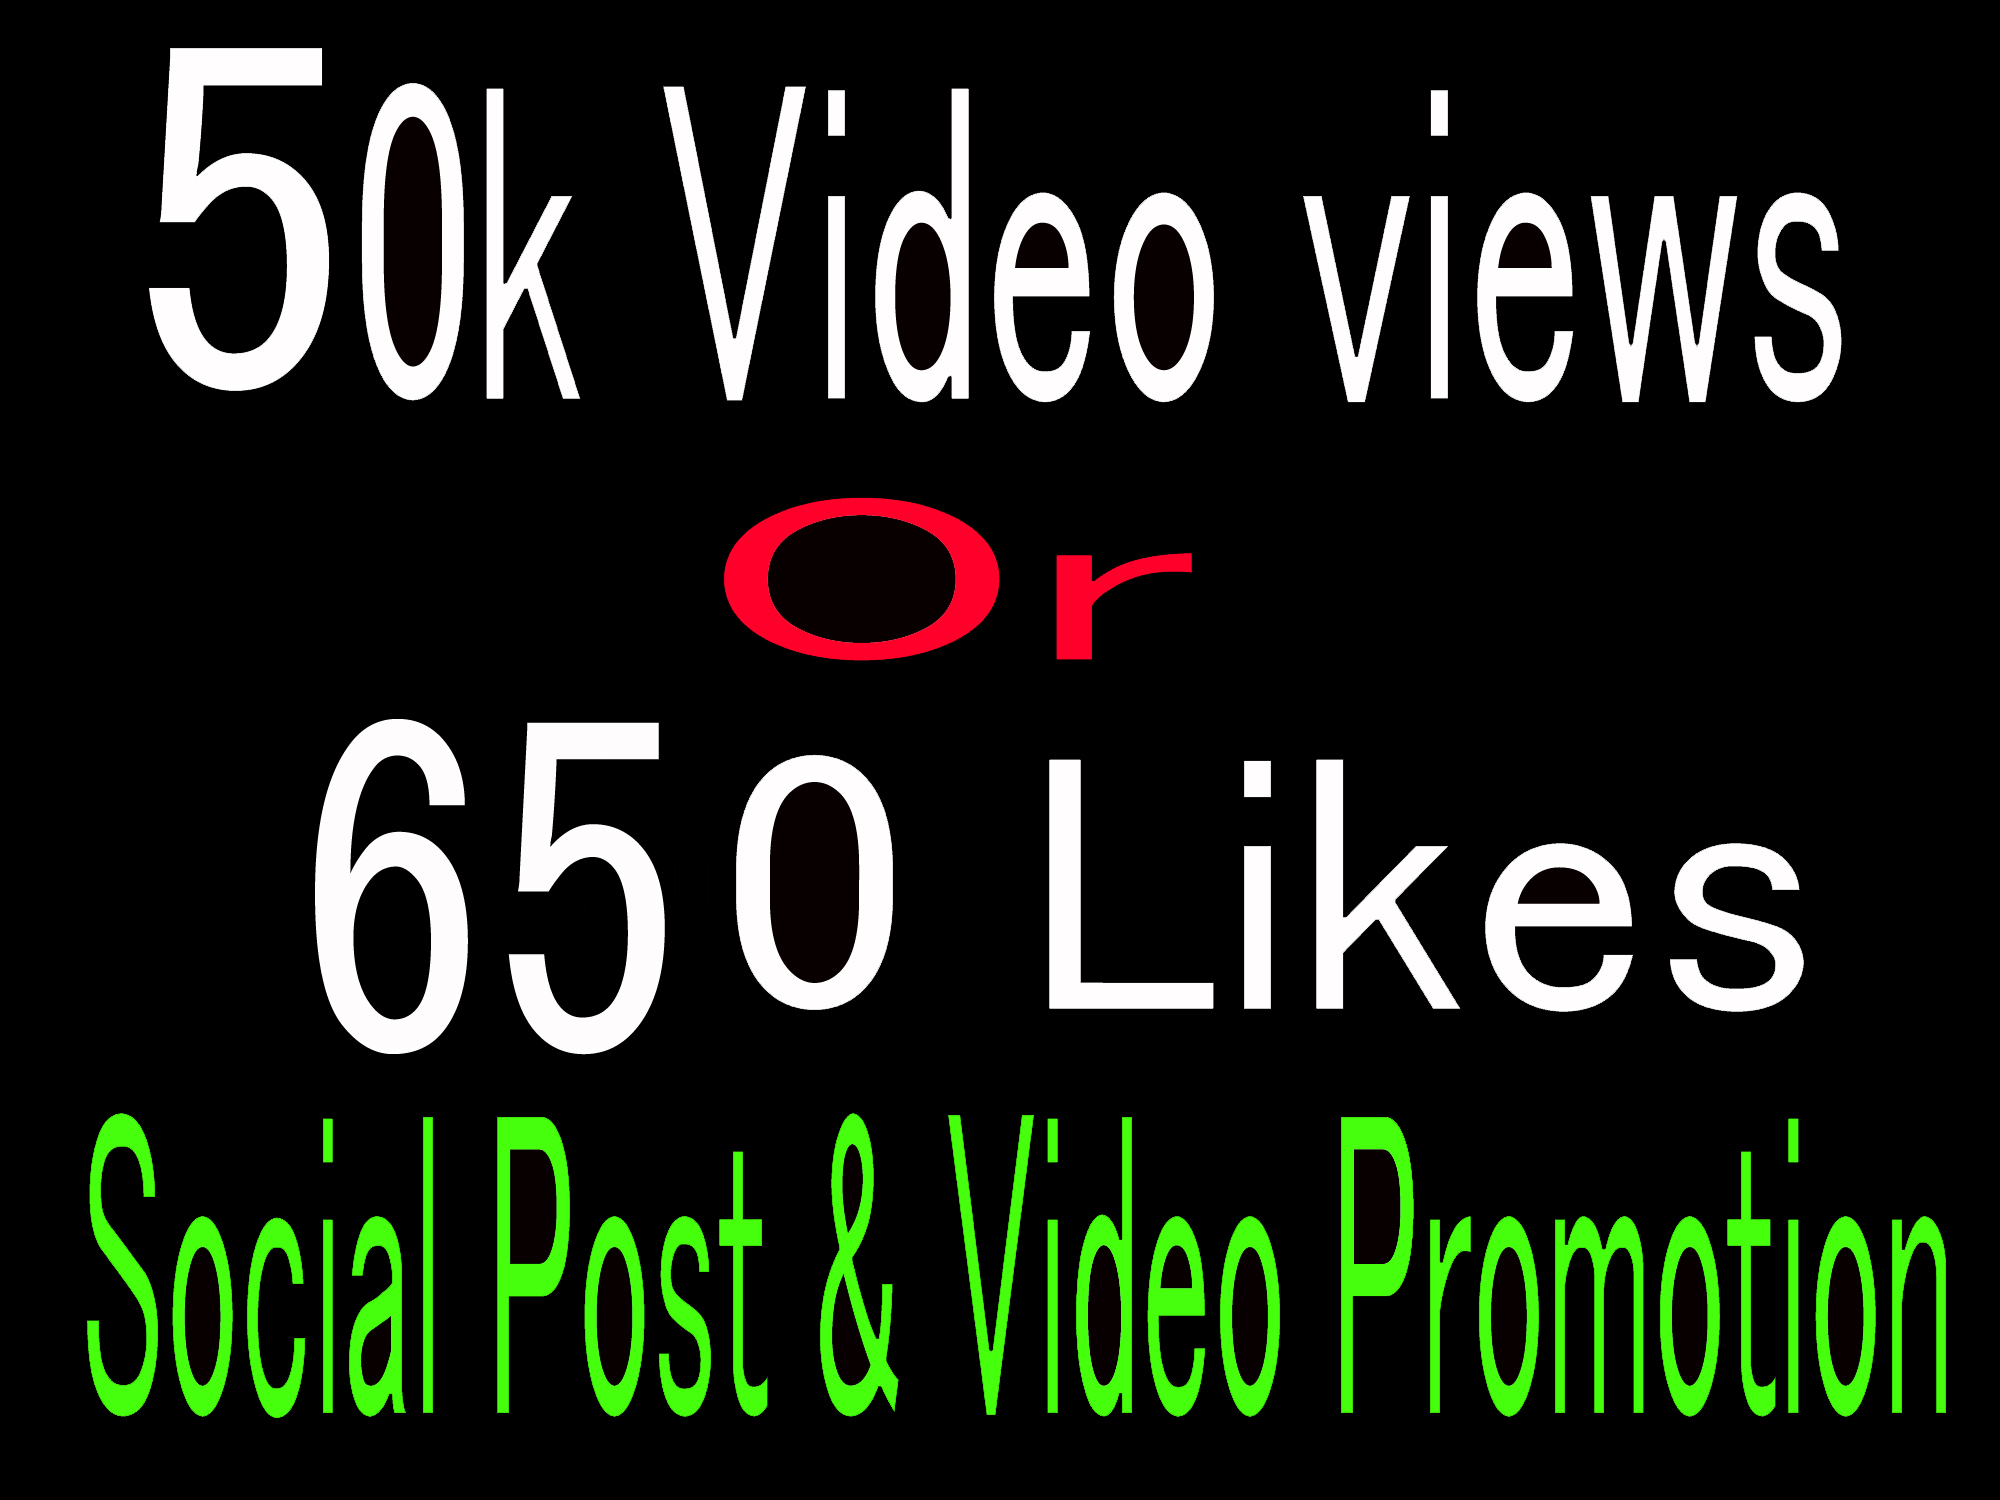 Instantly High Quality 50k video views 650+ Likes promotion,Social media Marketing